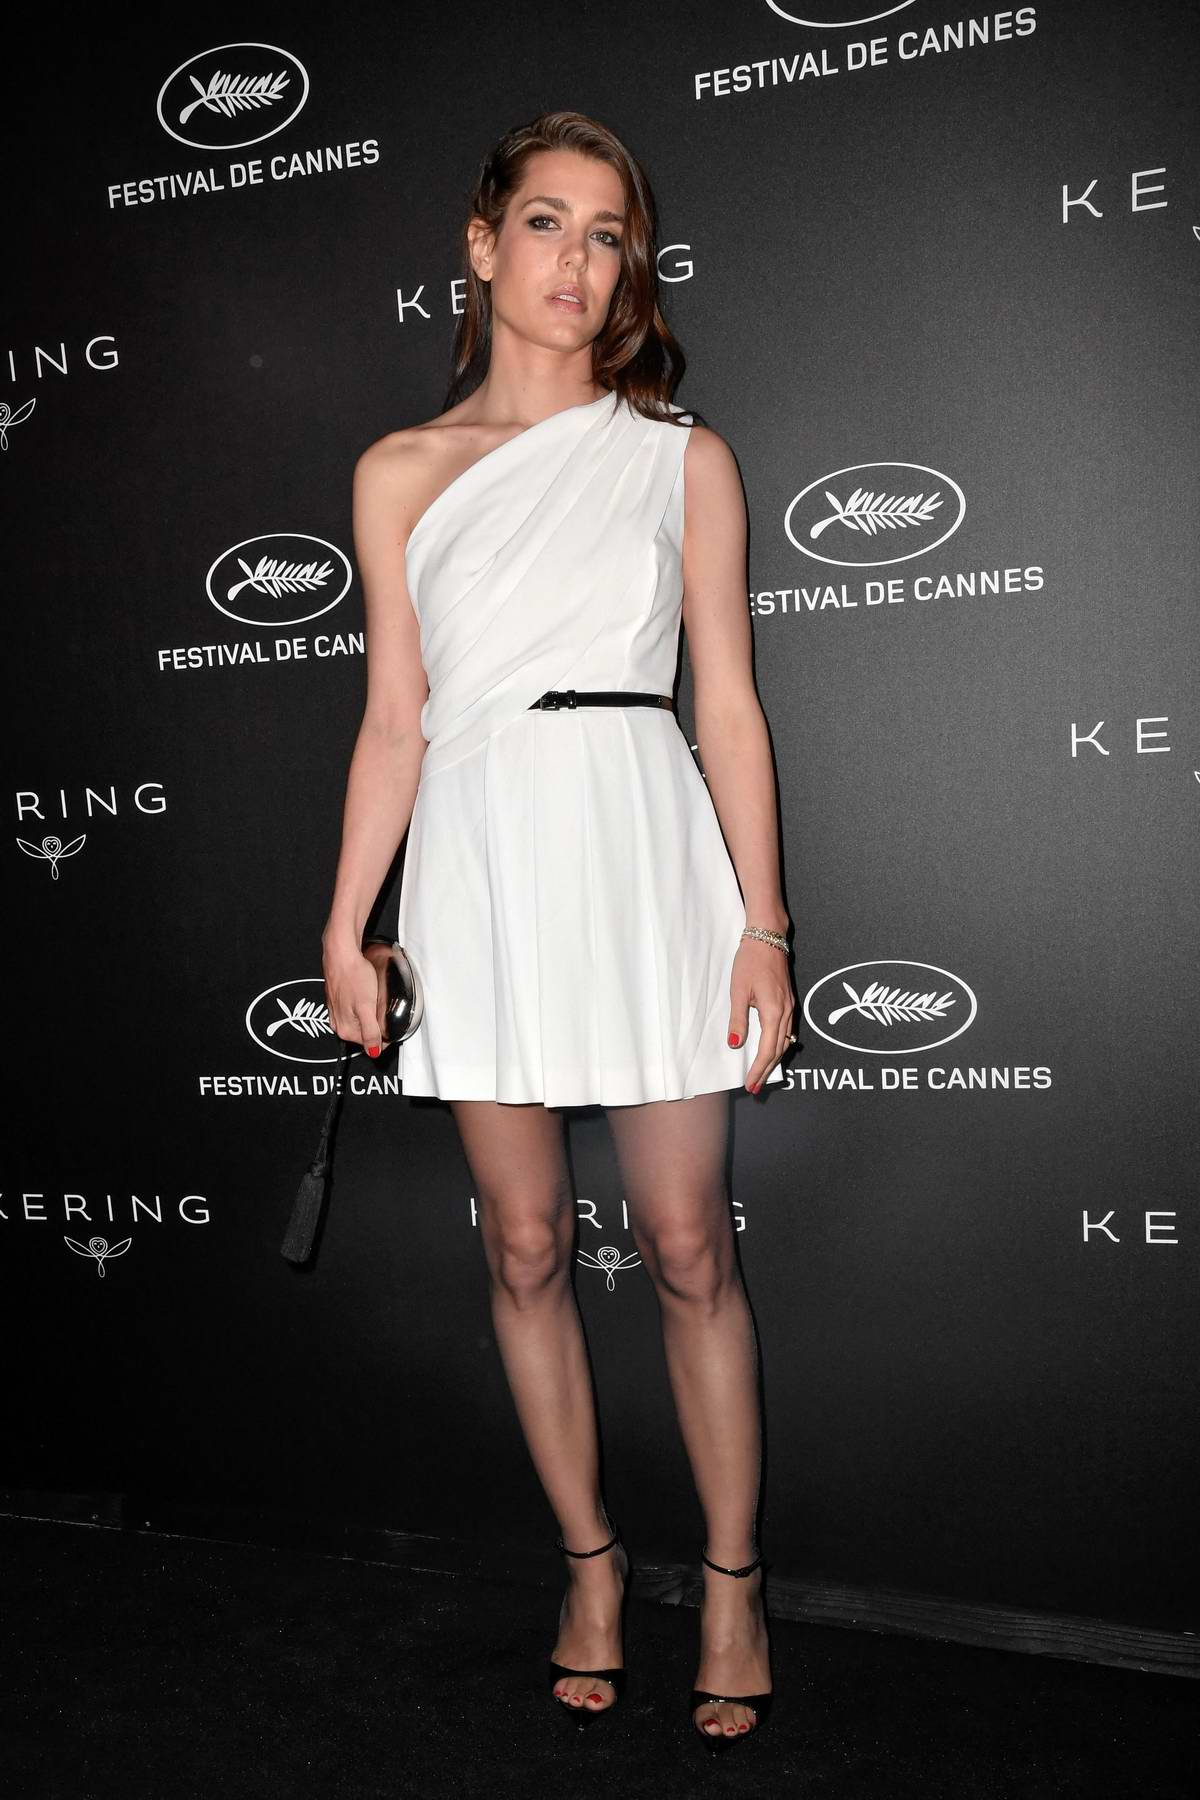 Charlotte Casigrahi attends the Kering Women In Motion Awards during the 72nd annual Cannes Film Festival in Cannes, France